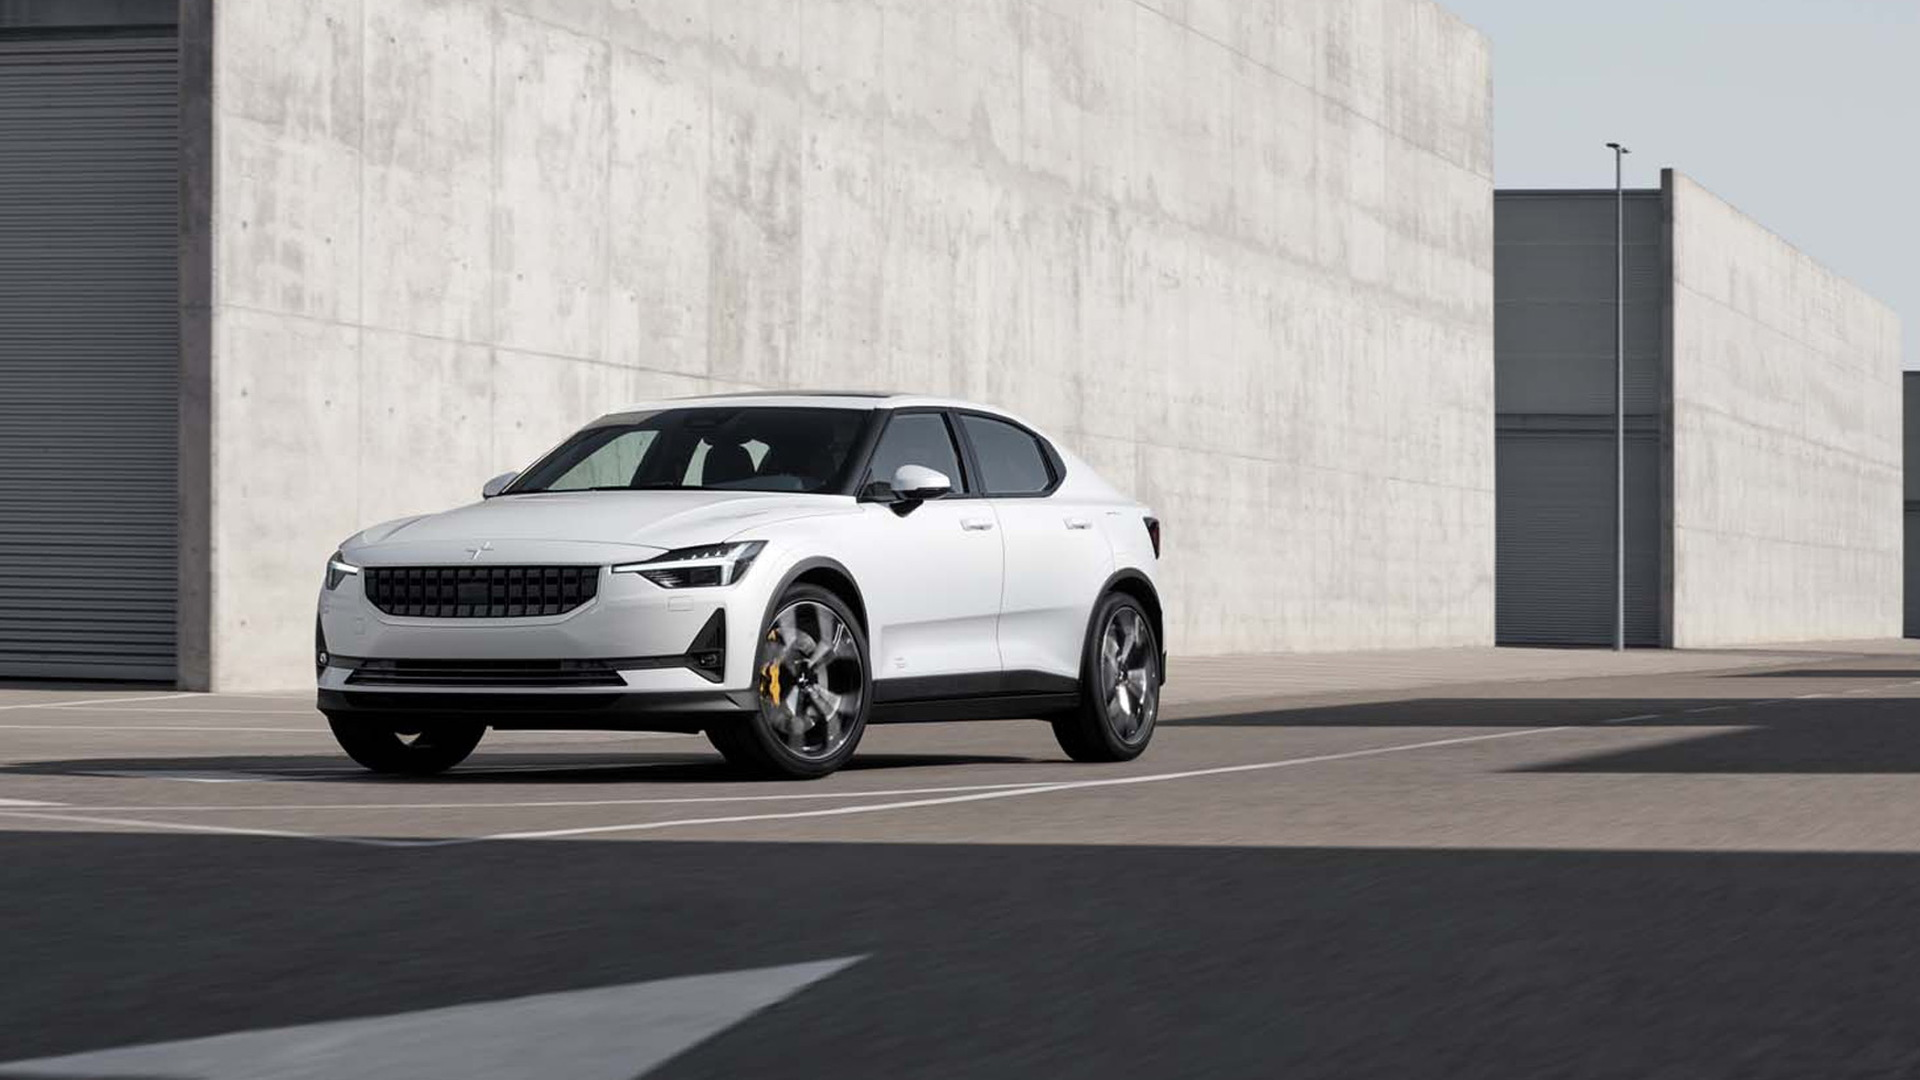 Volvo S Us Polestar Electric Car Plans Are In Flux Over China Tariffs